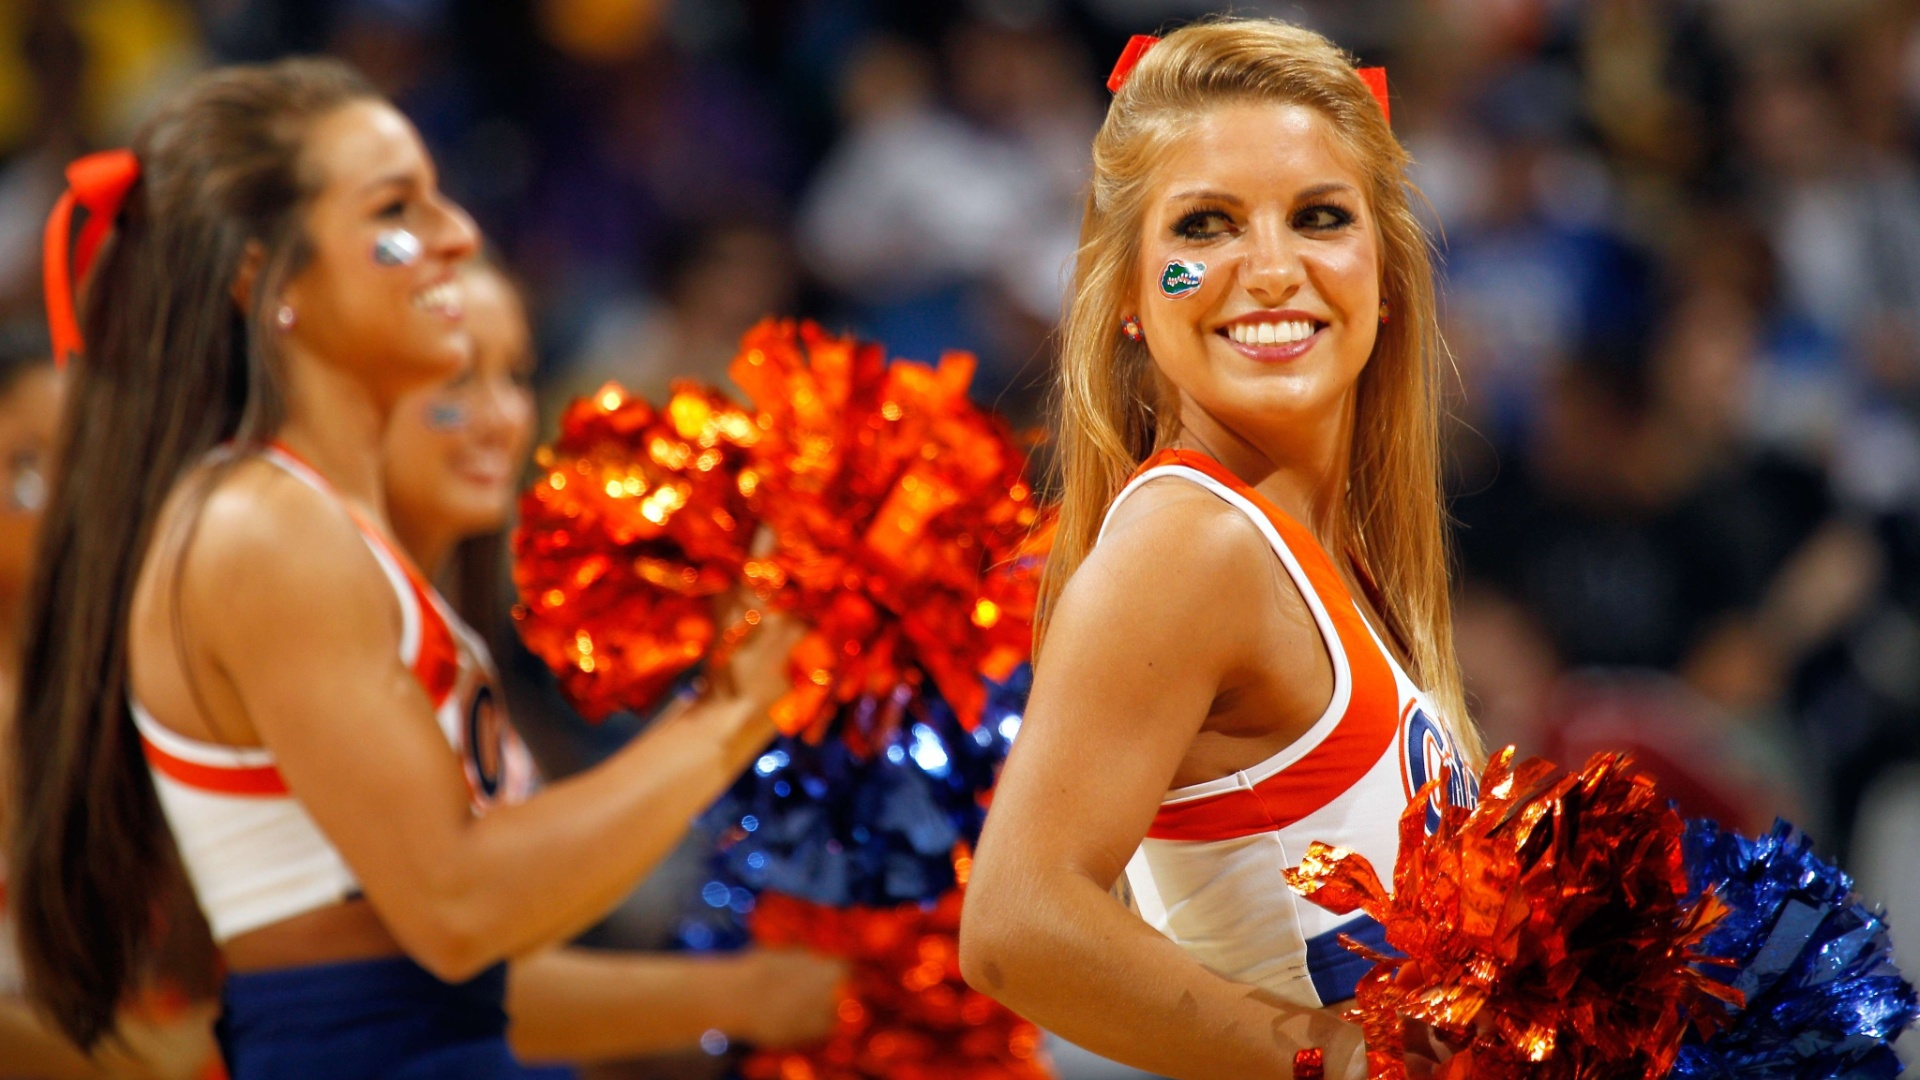 Cheerleader do Florida Gators sorri durante apresentao em jogo de basquete, nos EUA